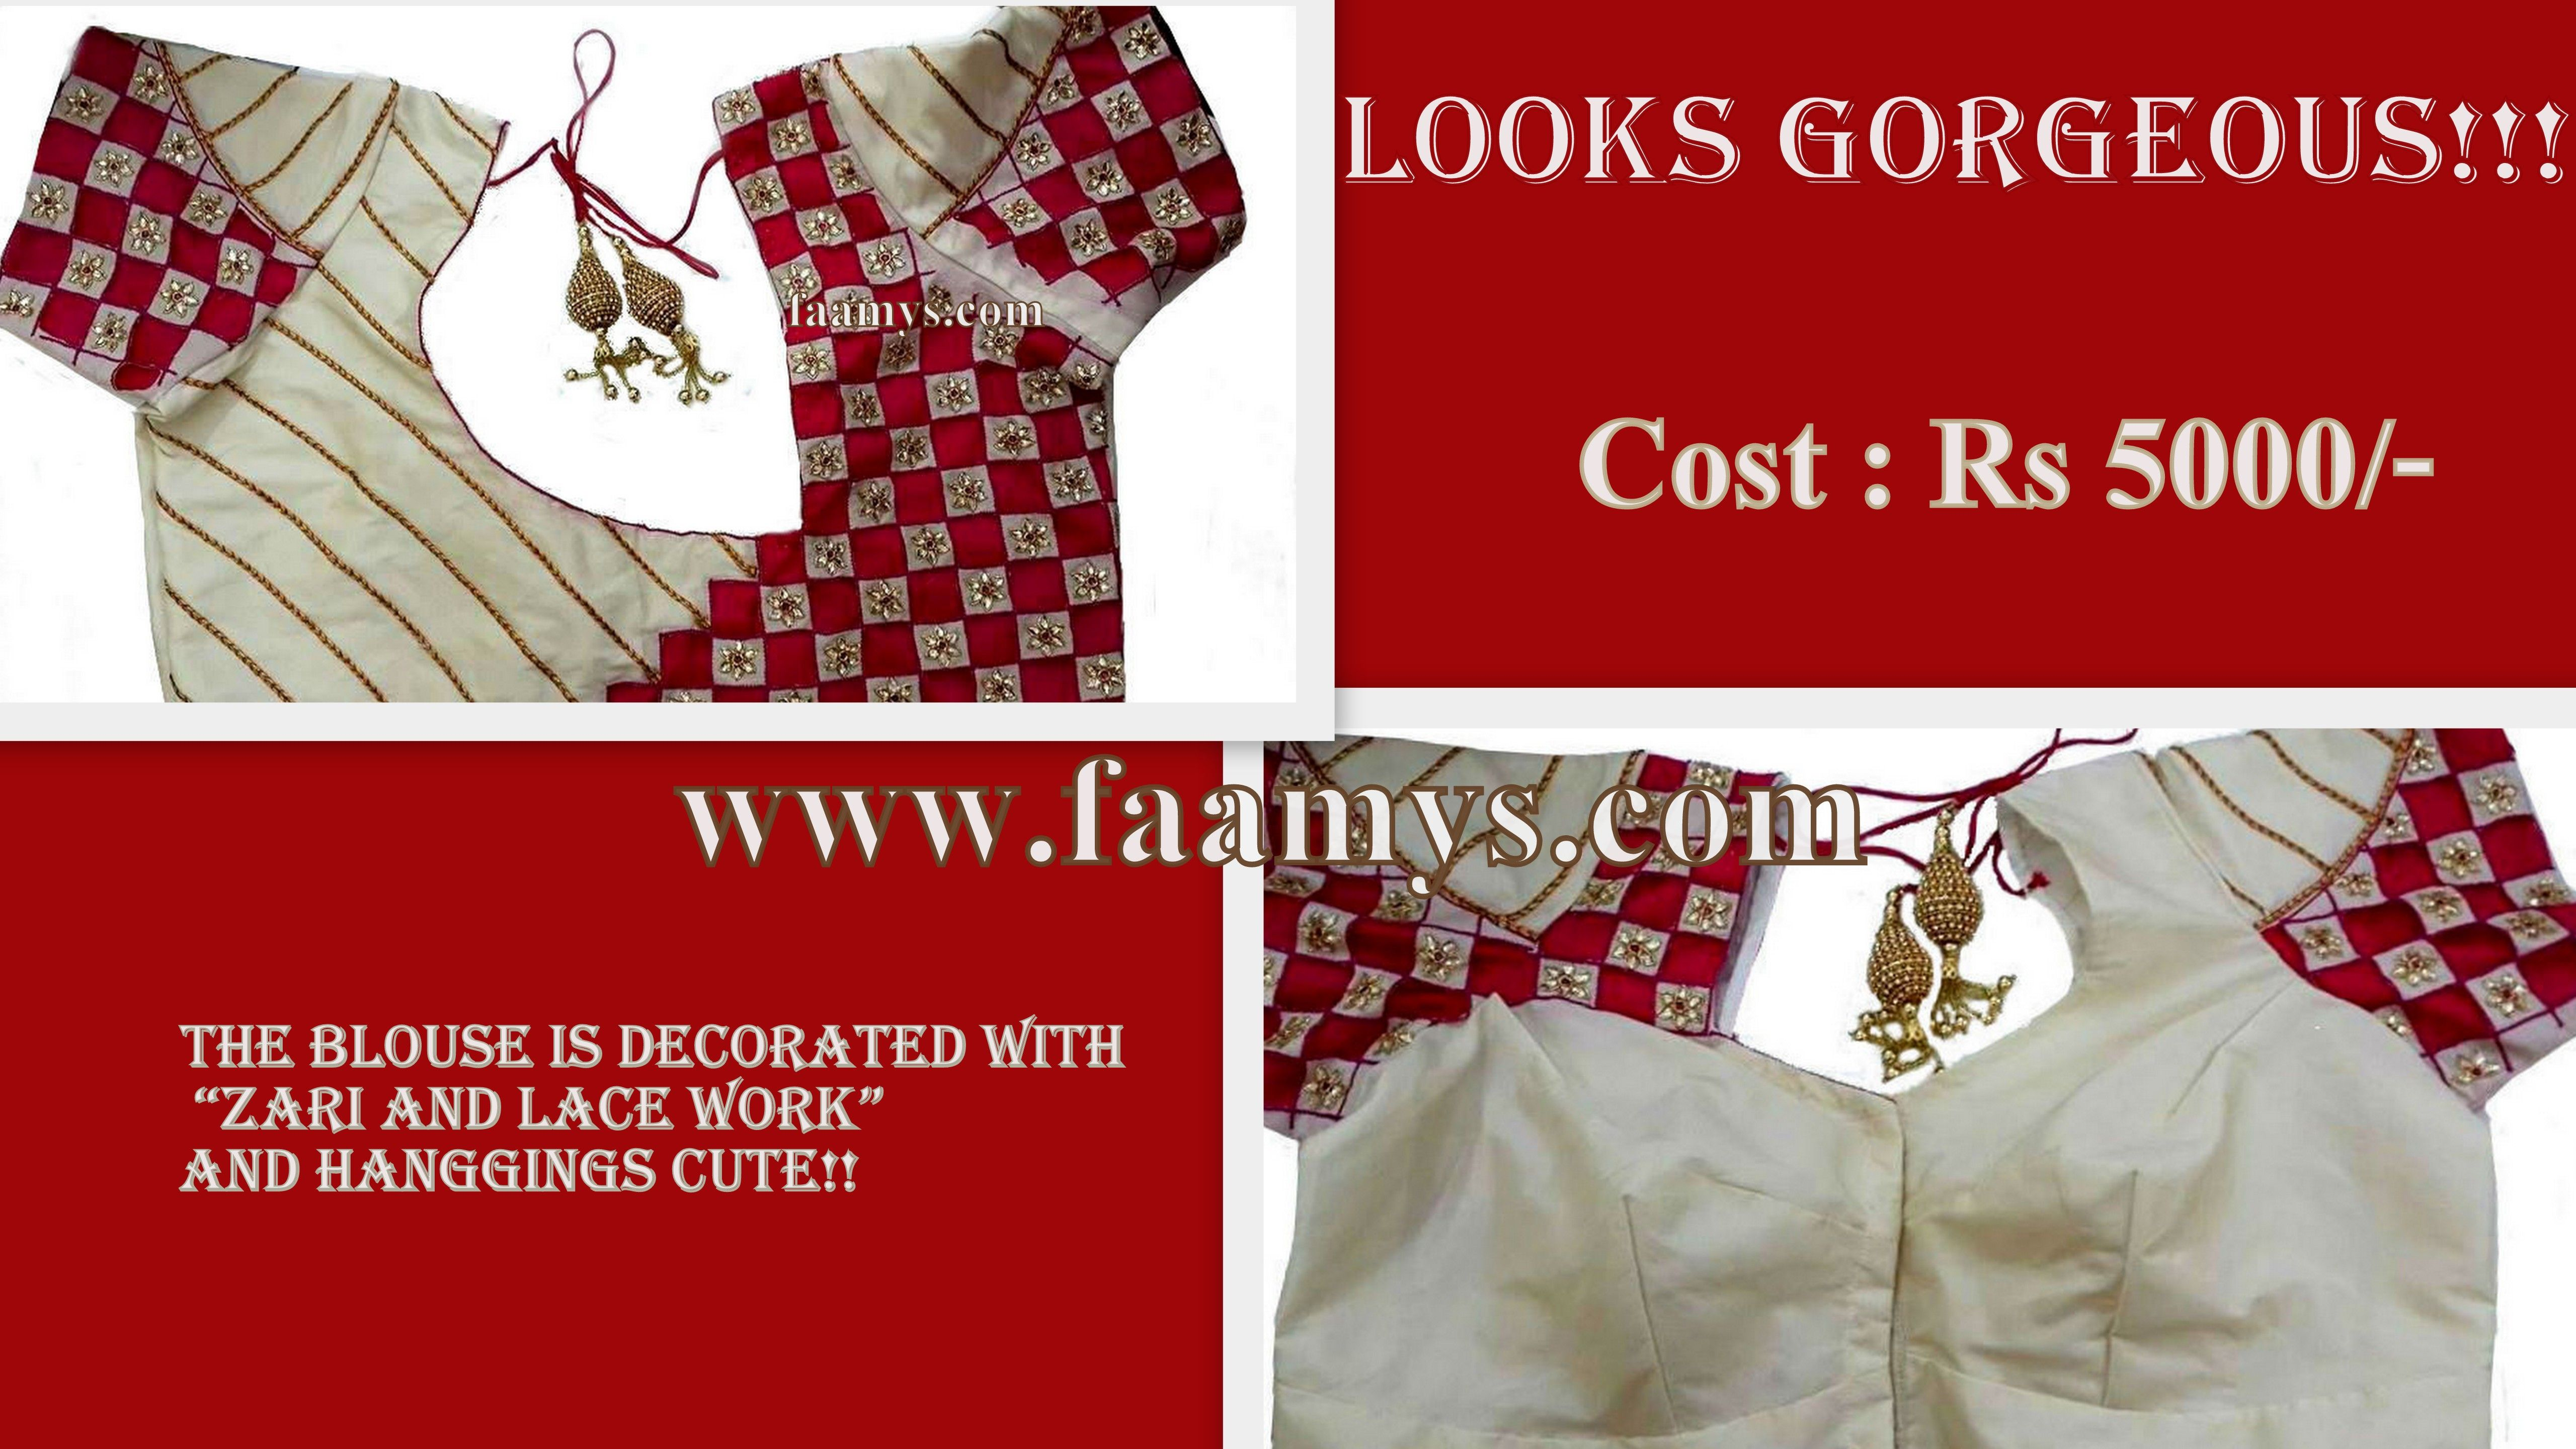 Cost Rs 5000 Visit Www Faamys Com Blouse Designs Looking Gorgeous Fashion